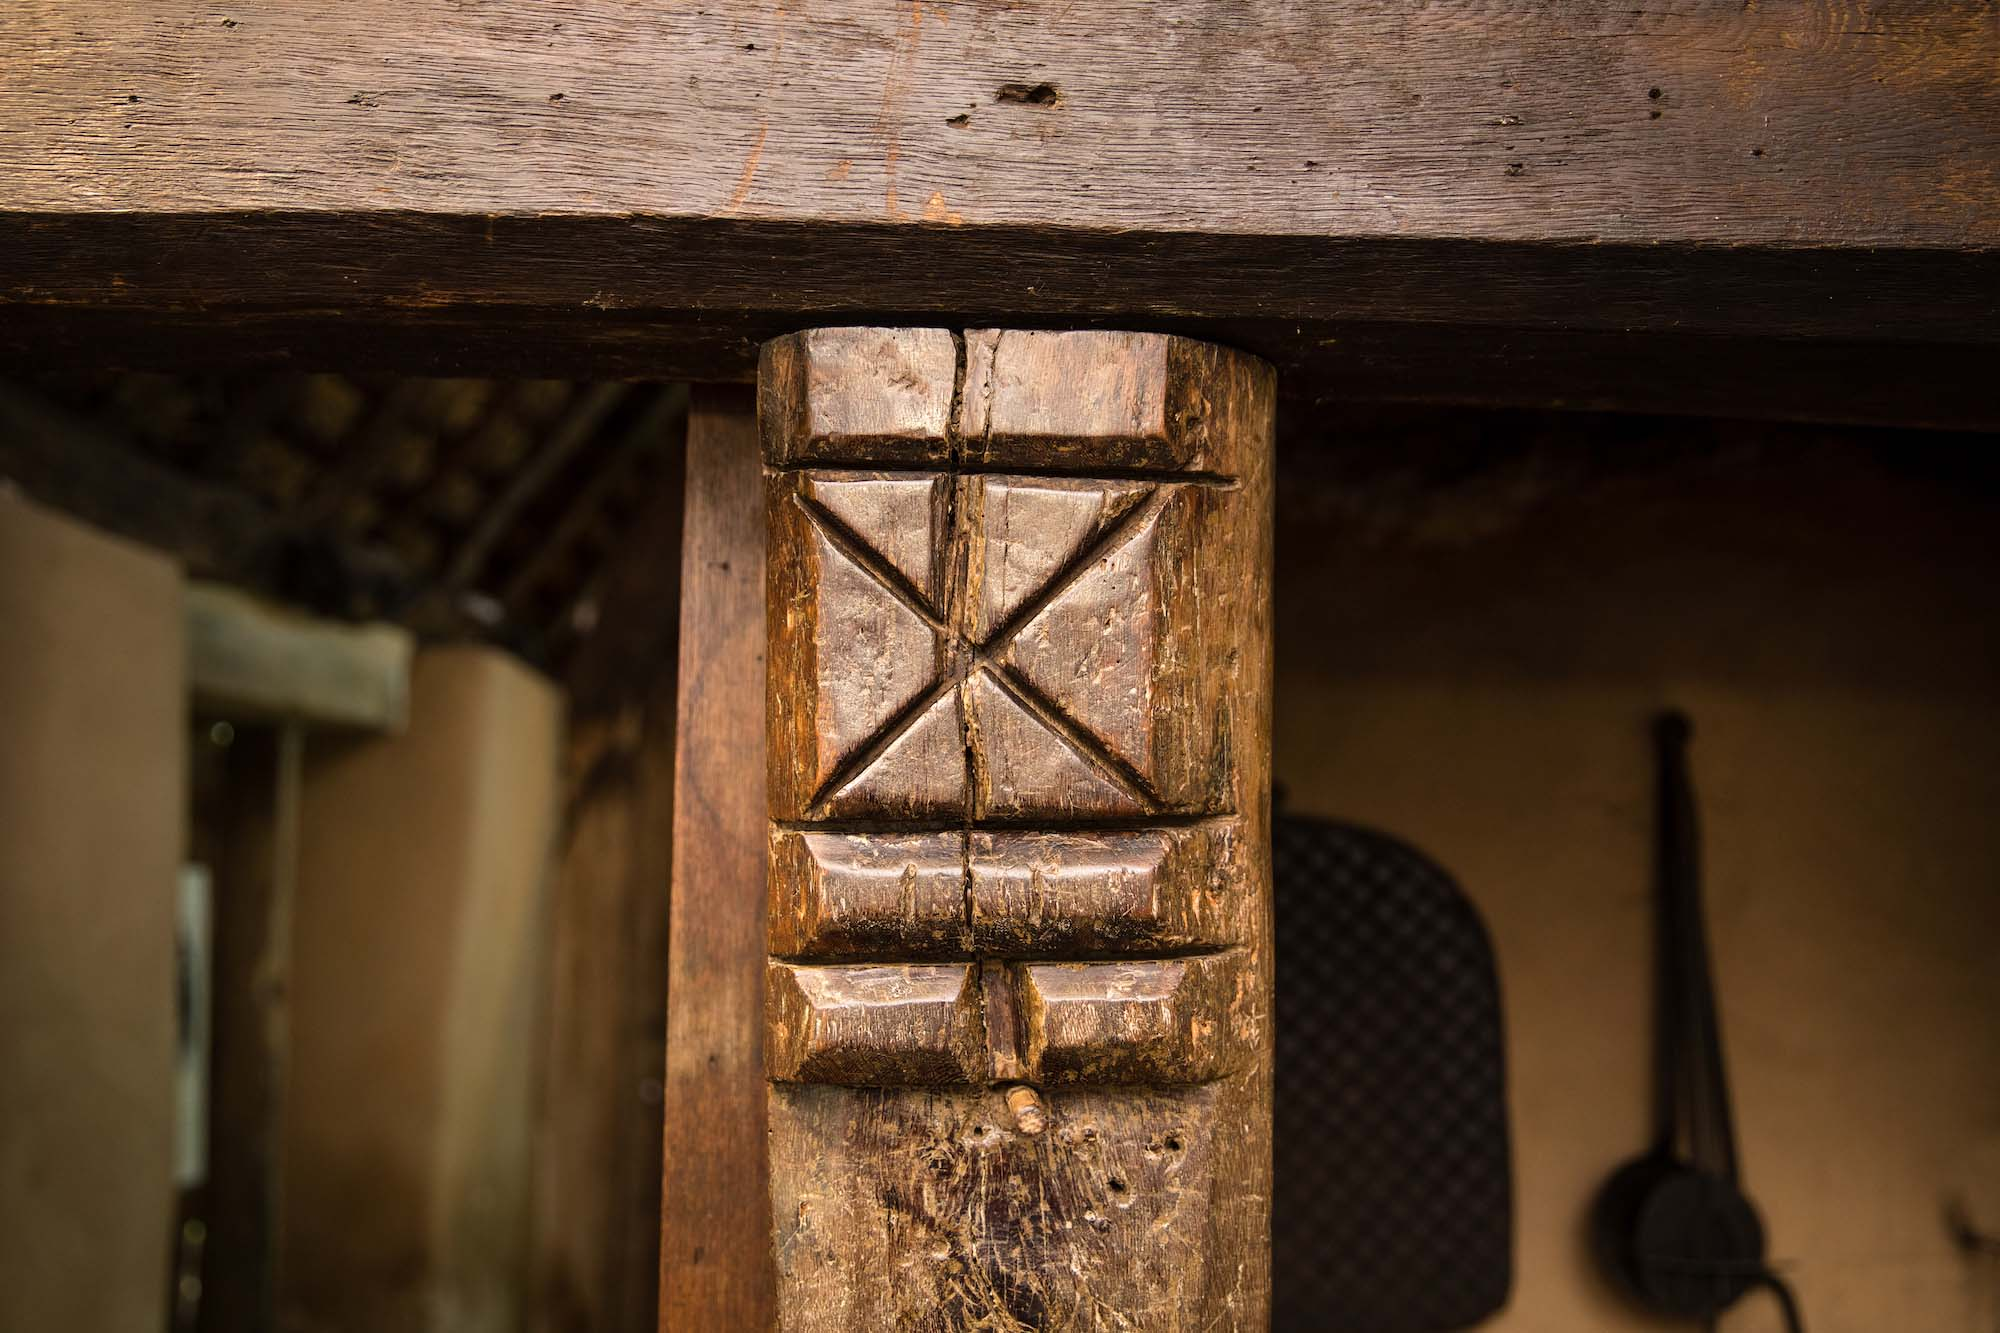 a photo of a carved wooden post holding up a beam